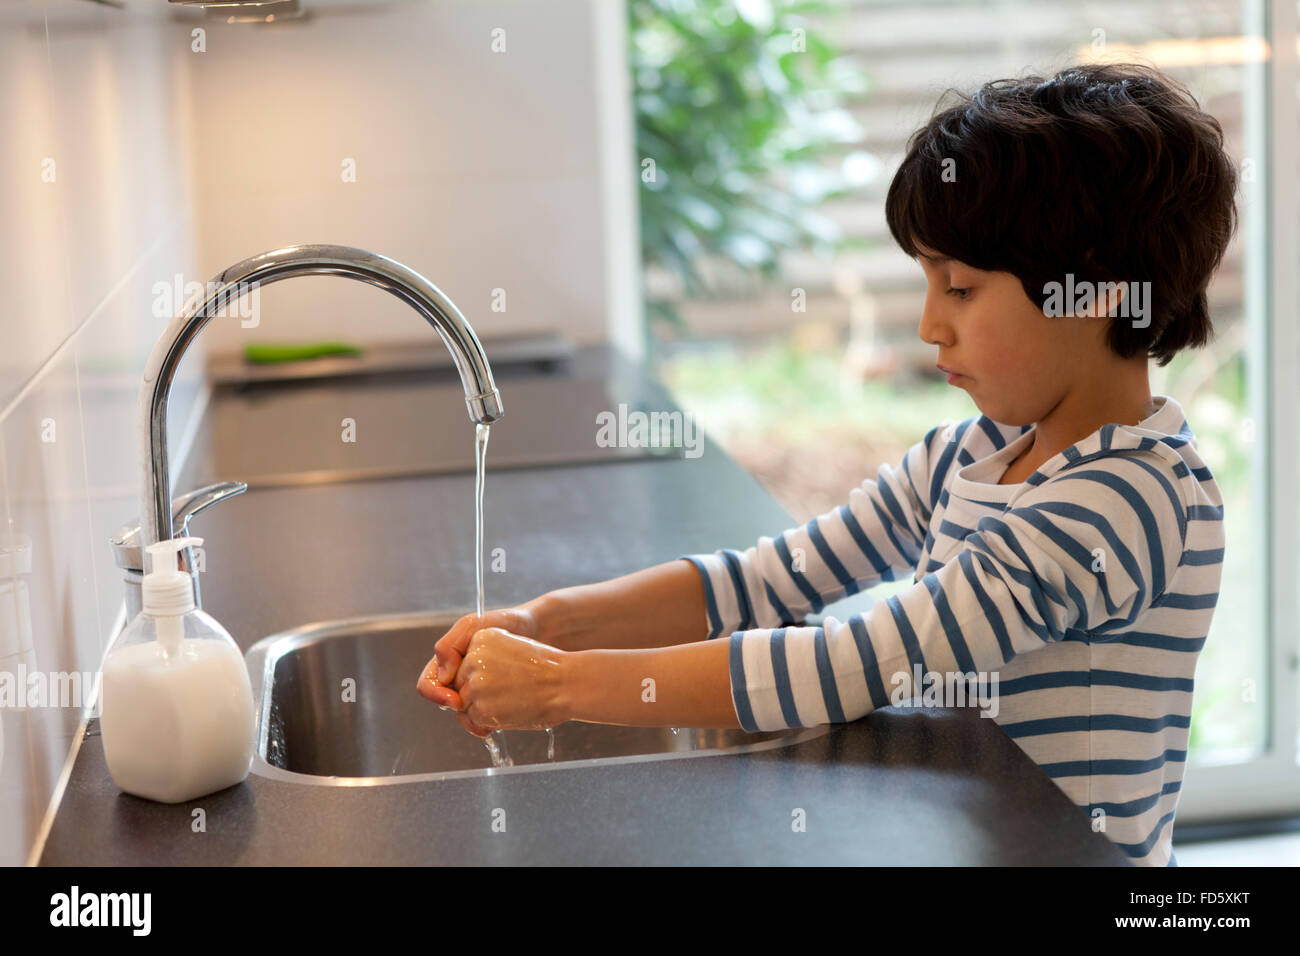 Eight year old boy washing hands in the kitchen - Stock Image